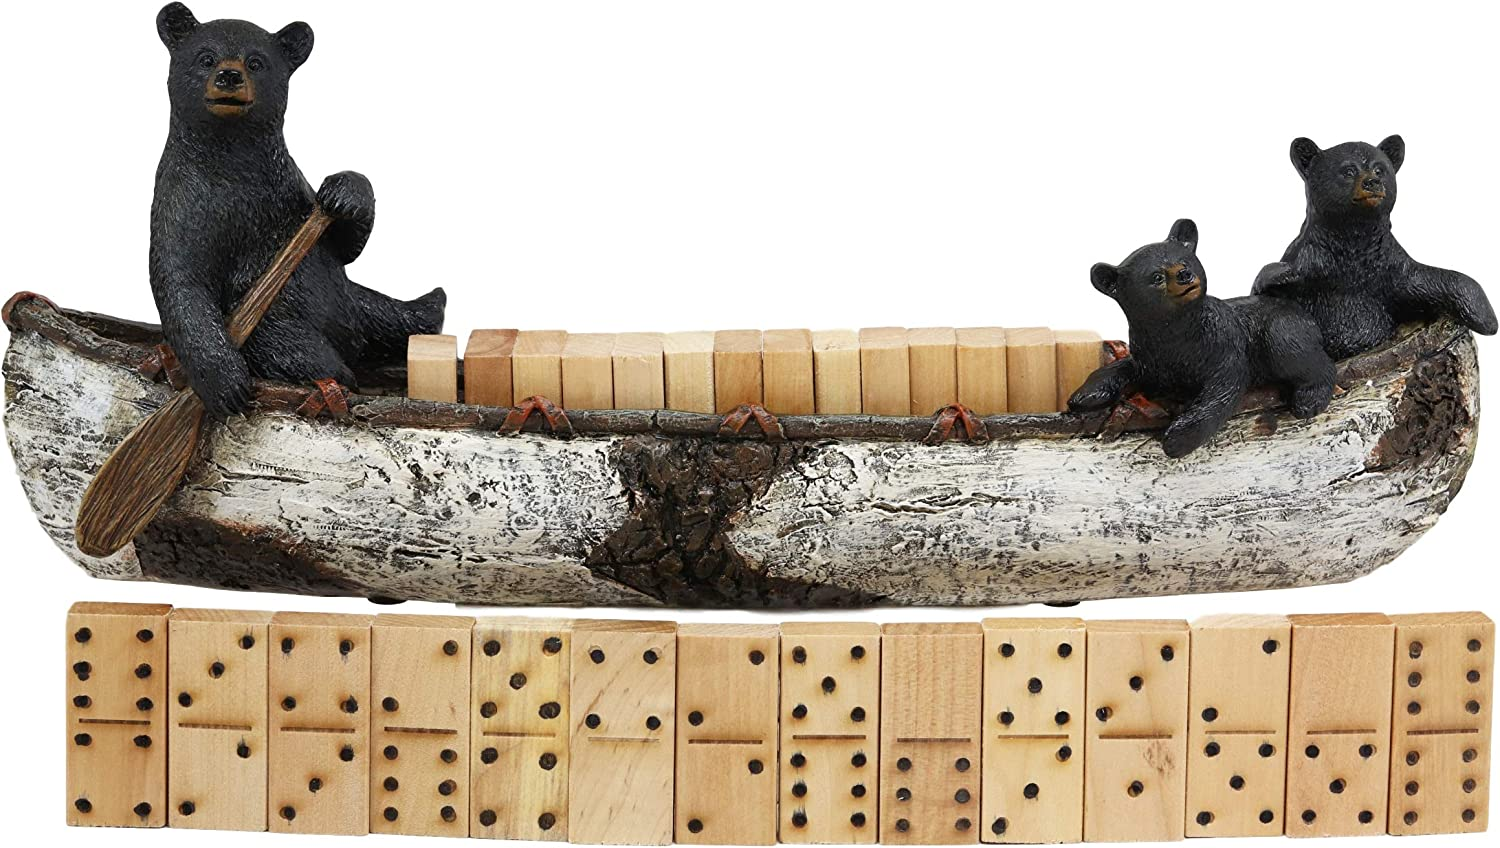 "Ebros Western Rustic 3 Black Bears Family Rowing Birch Bark Canoe Boat Domino Display Figurine Holder with 28 Wooden Dominoes Set 15"" Long Bear Decorative Figurine for Cabin Lodge Country Cottage"